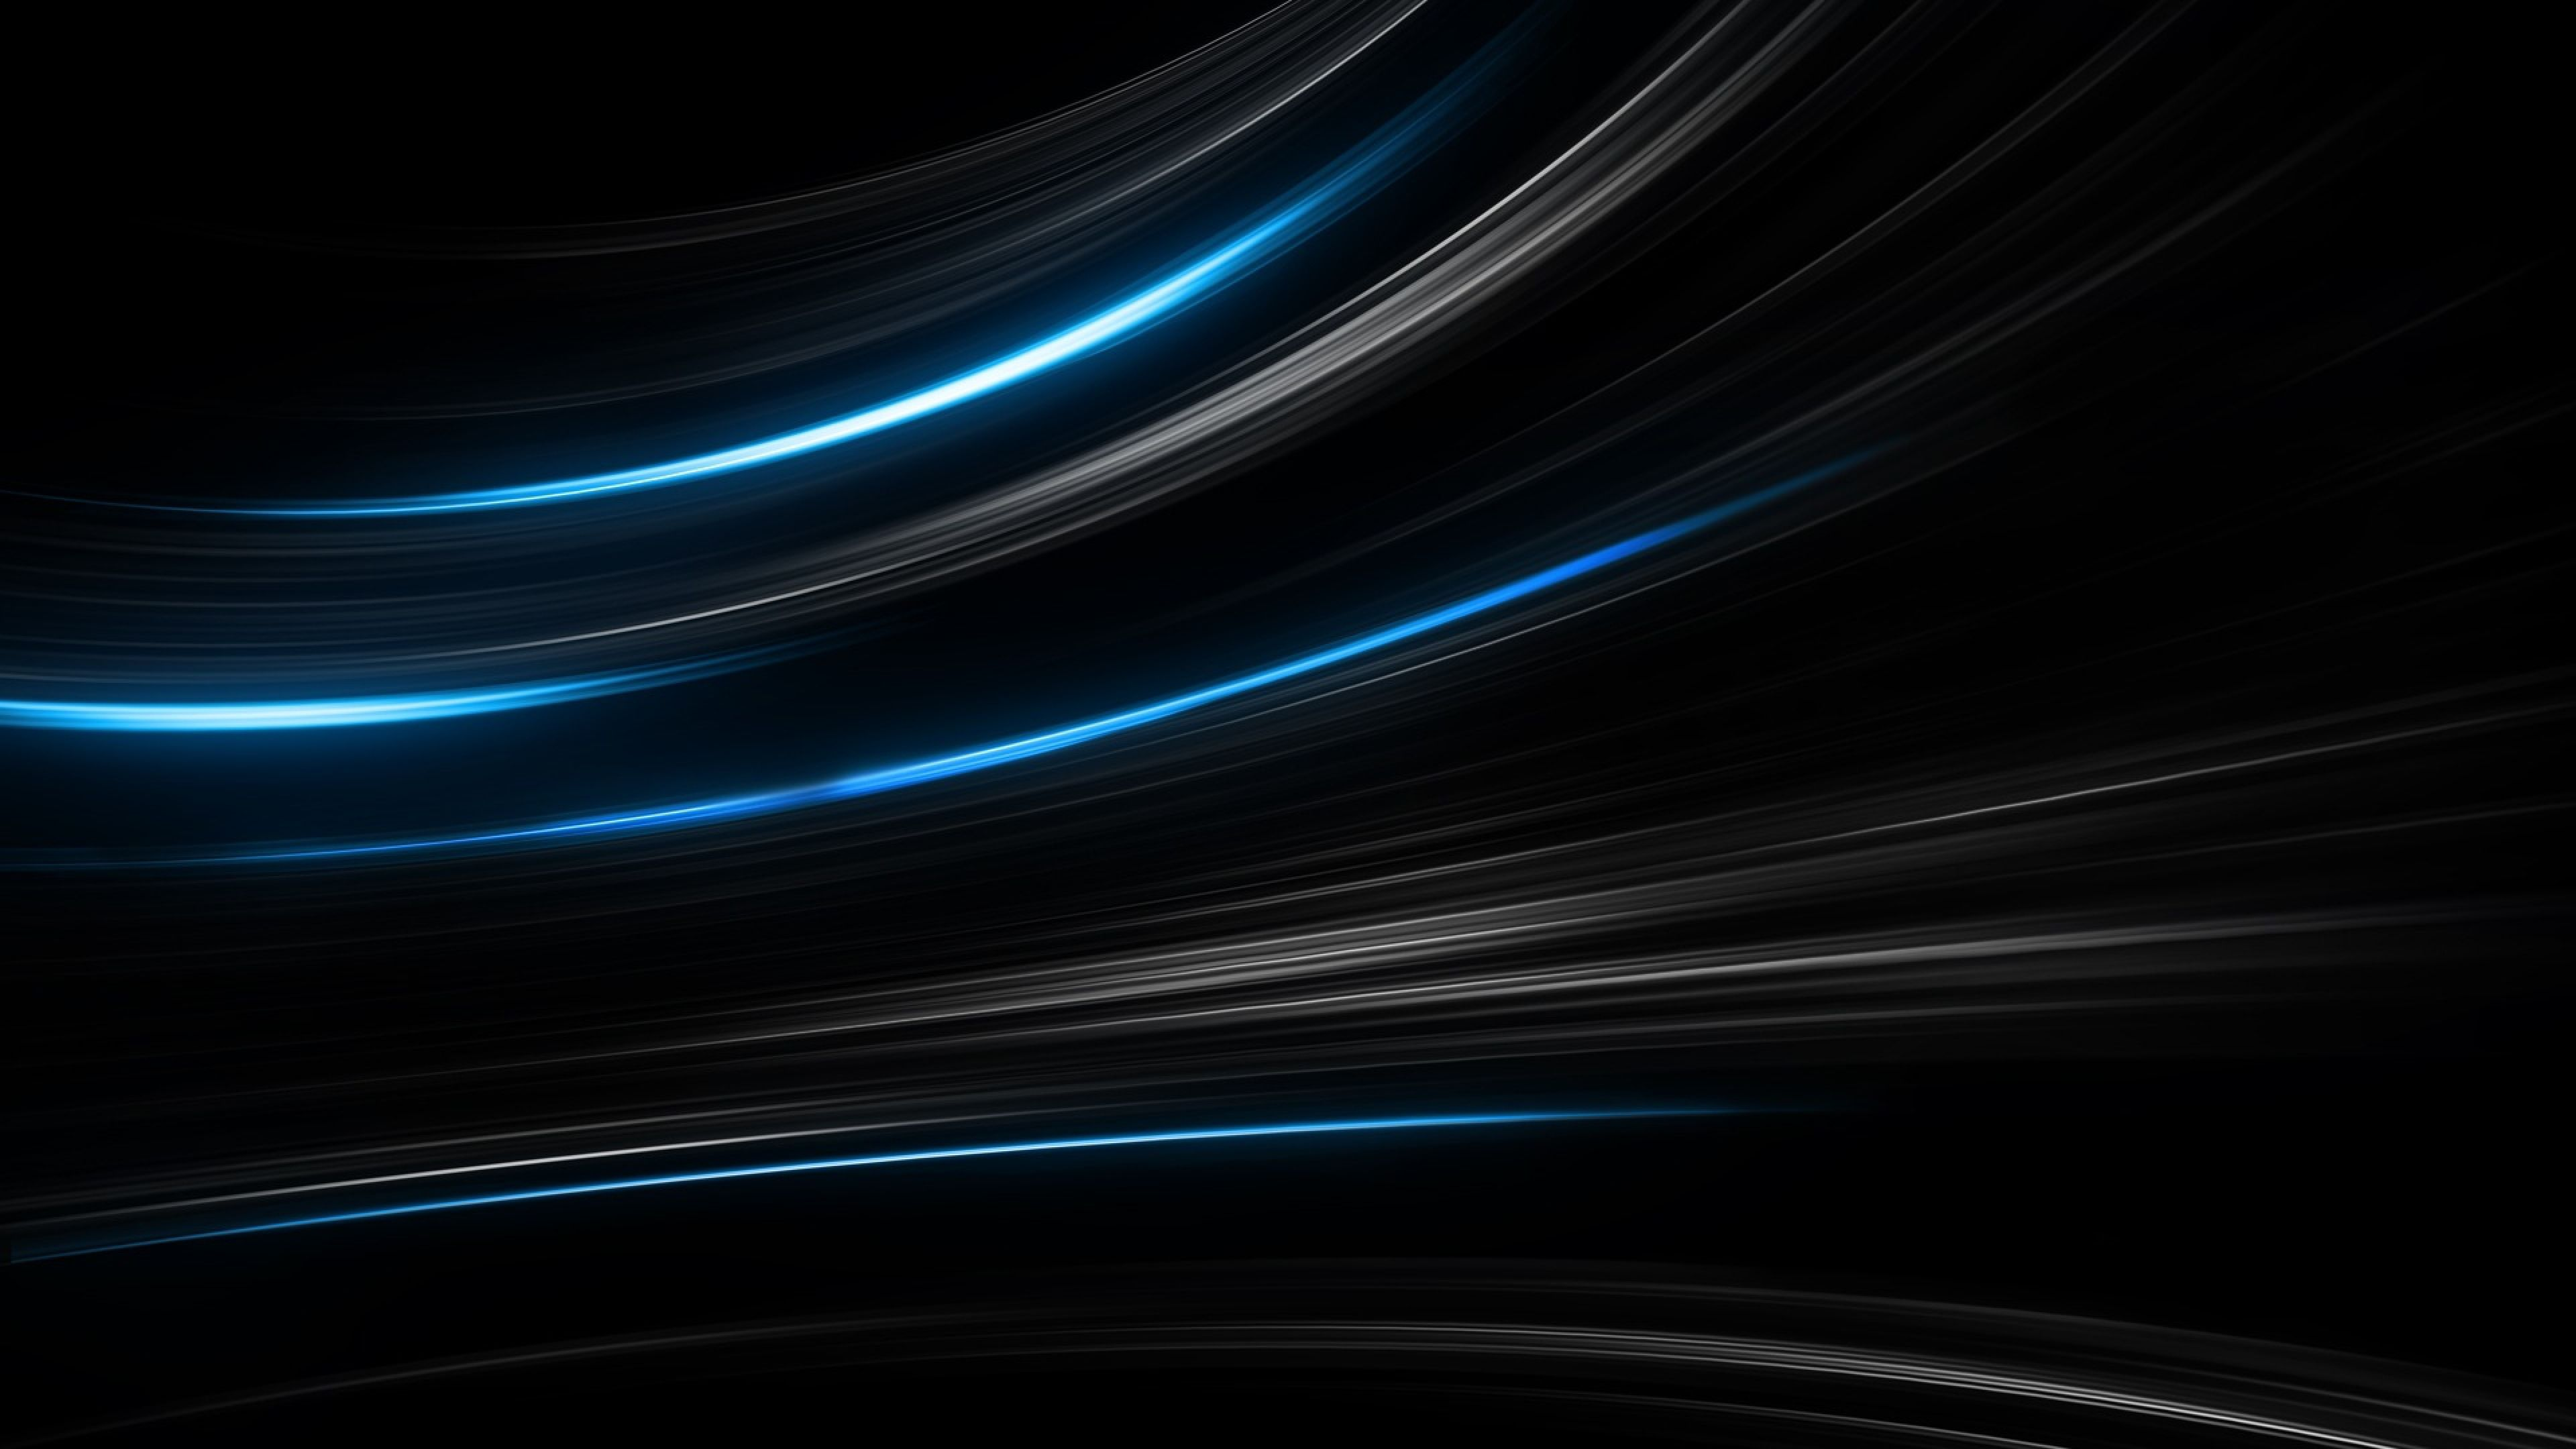 Blue And Black Wallpaper 40